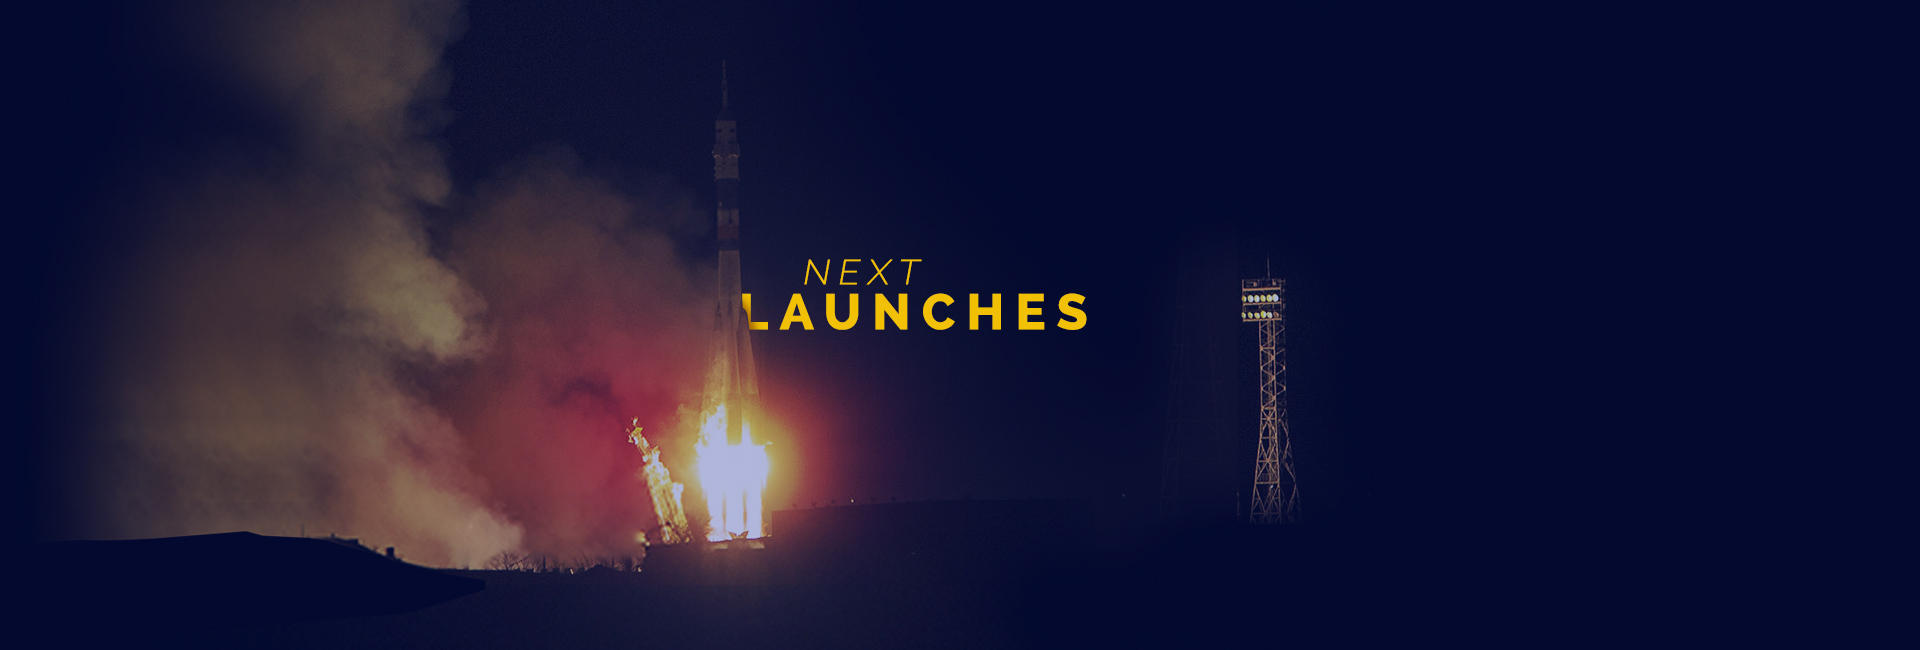 Next Launches